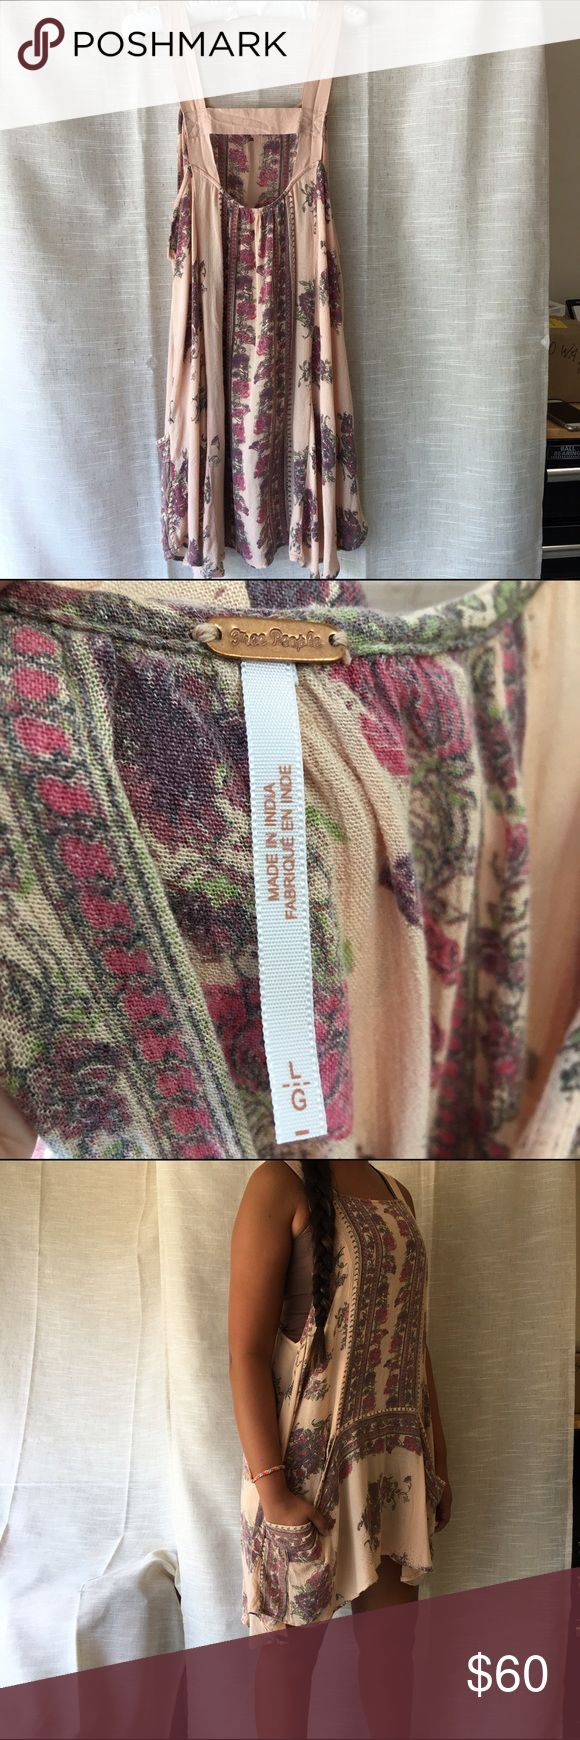 Free People dress/tunic Size Large. Can be worn as a dress or tunic. Cute worn with long sleeve top under. Soft material of 100% rayon. Fall colors. Warm peach, cranberry, olive colors. Has front pockets. Free People Dresses